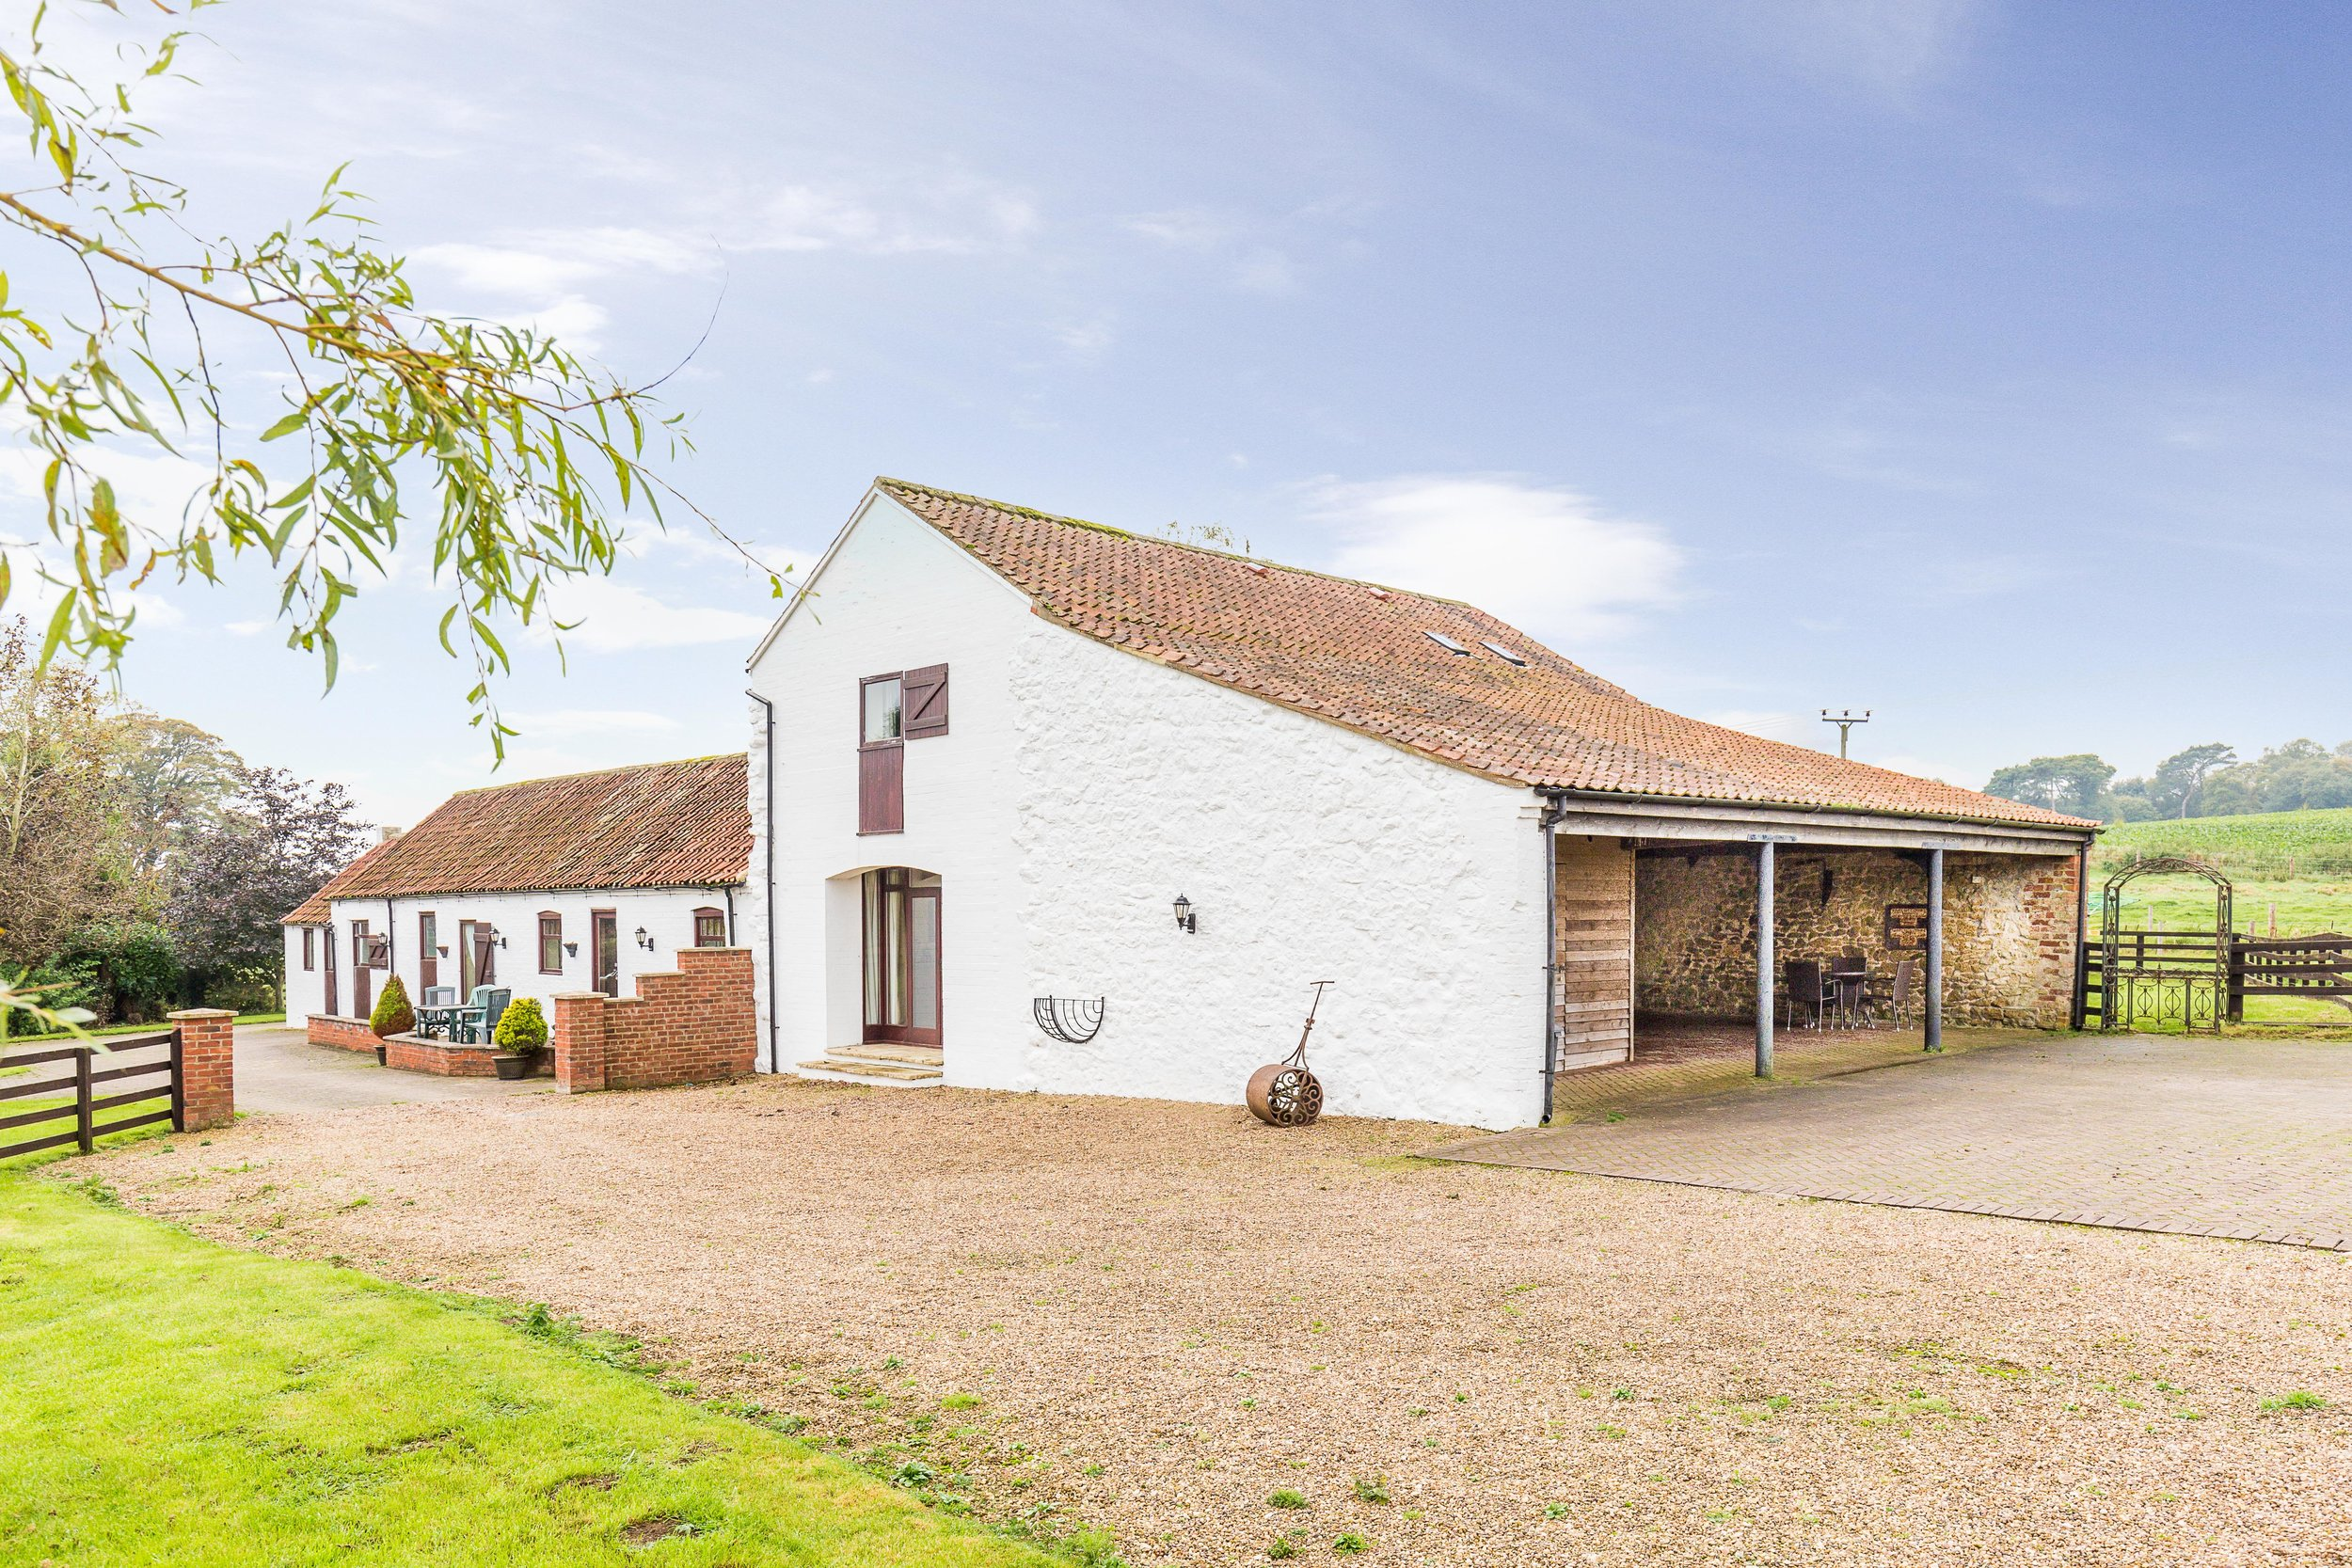 The Barn - Stylishly converted two storey 17th century barn for up to 4 people